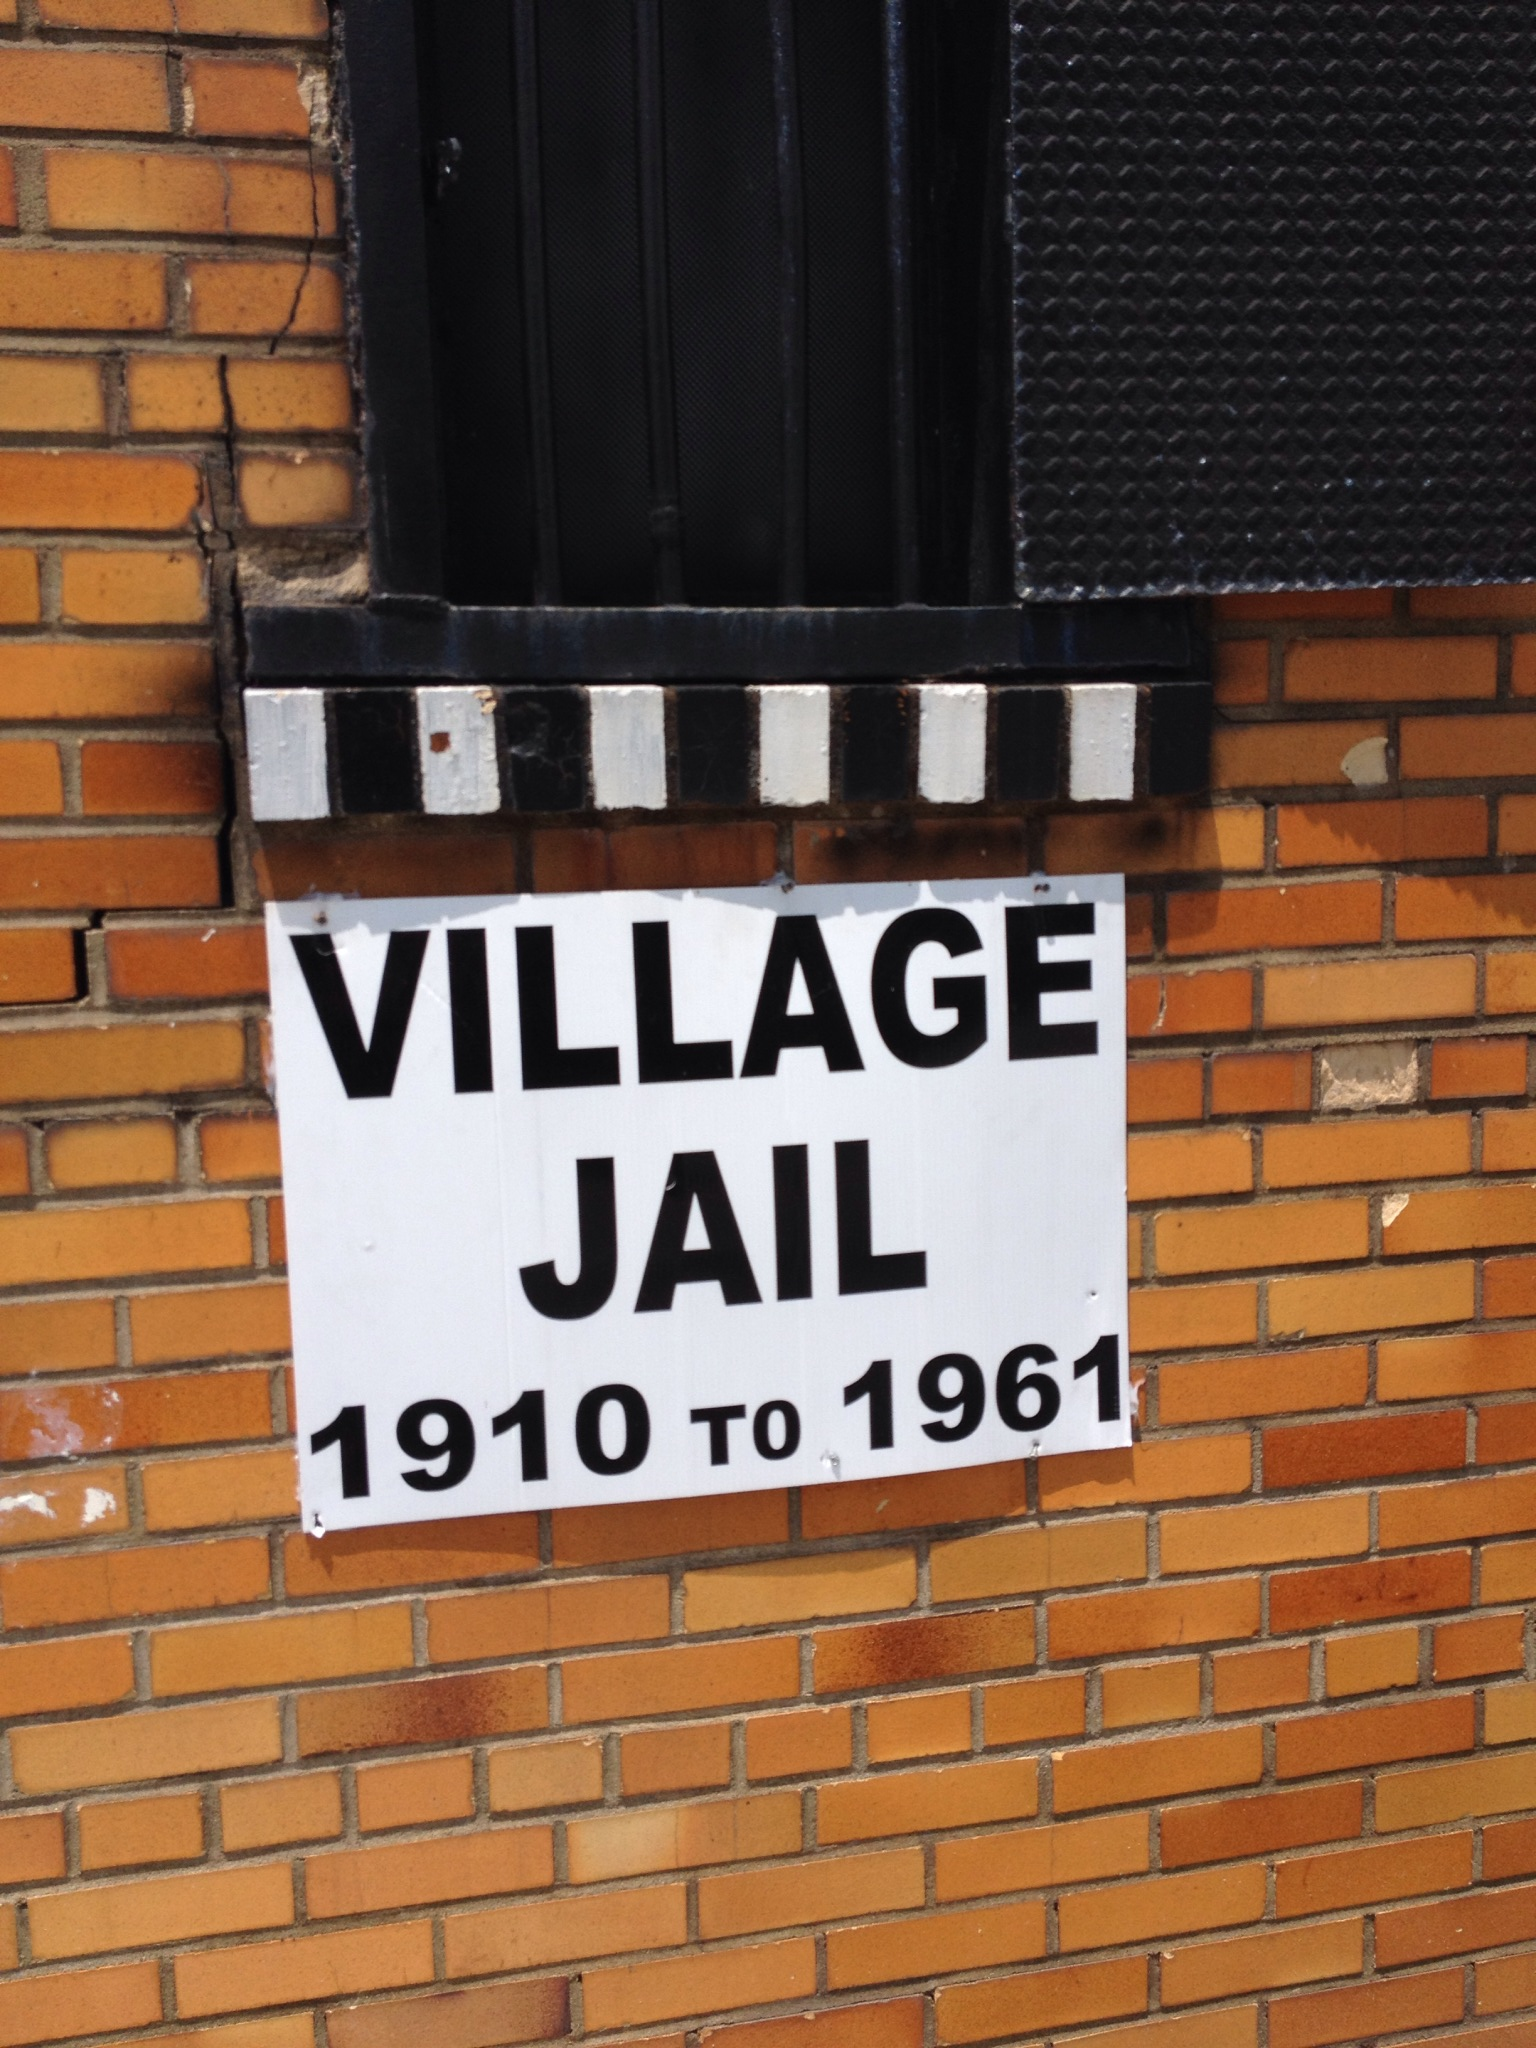 Sign on the jail indicates that this was the Chesapeake Jail from 1910 to 1961